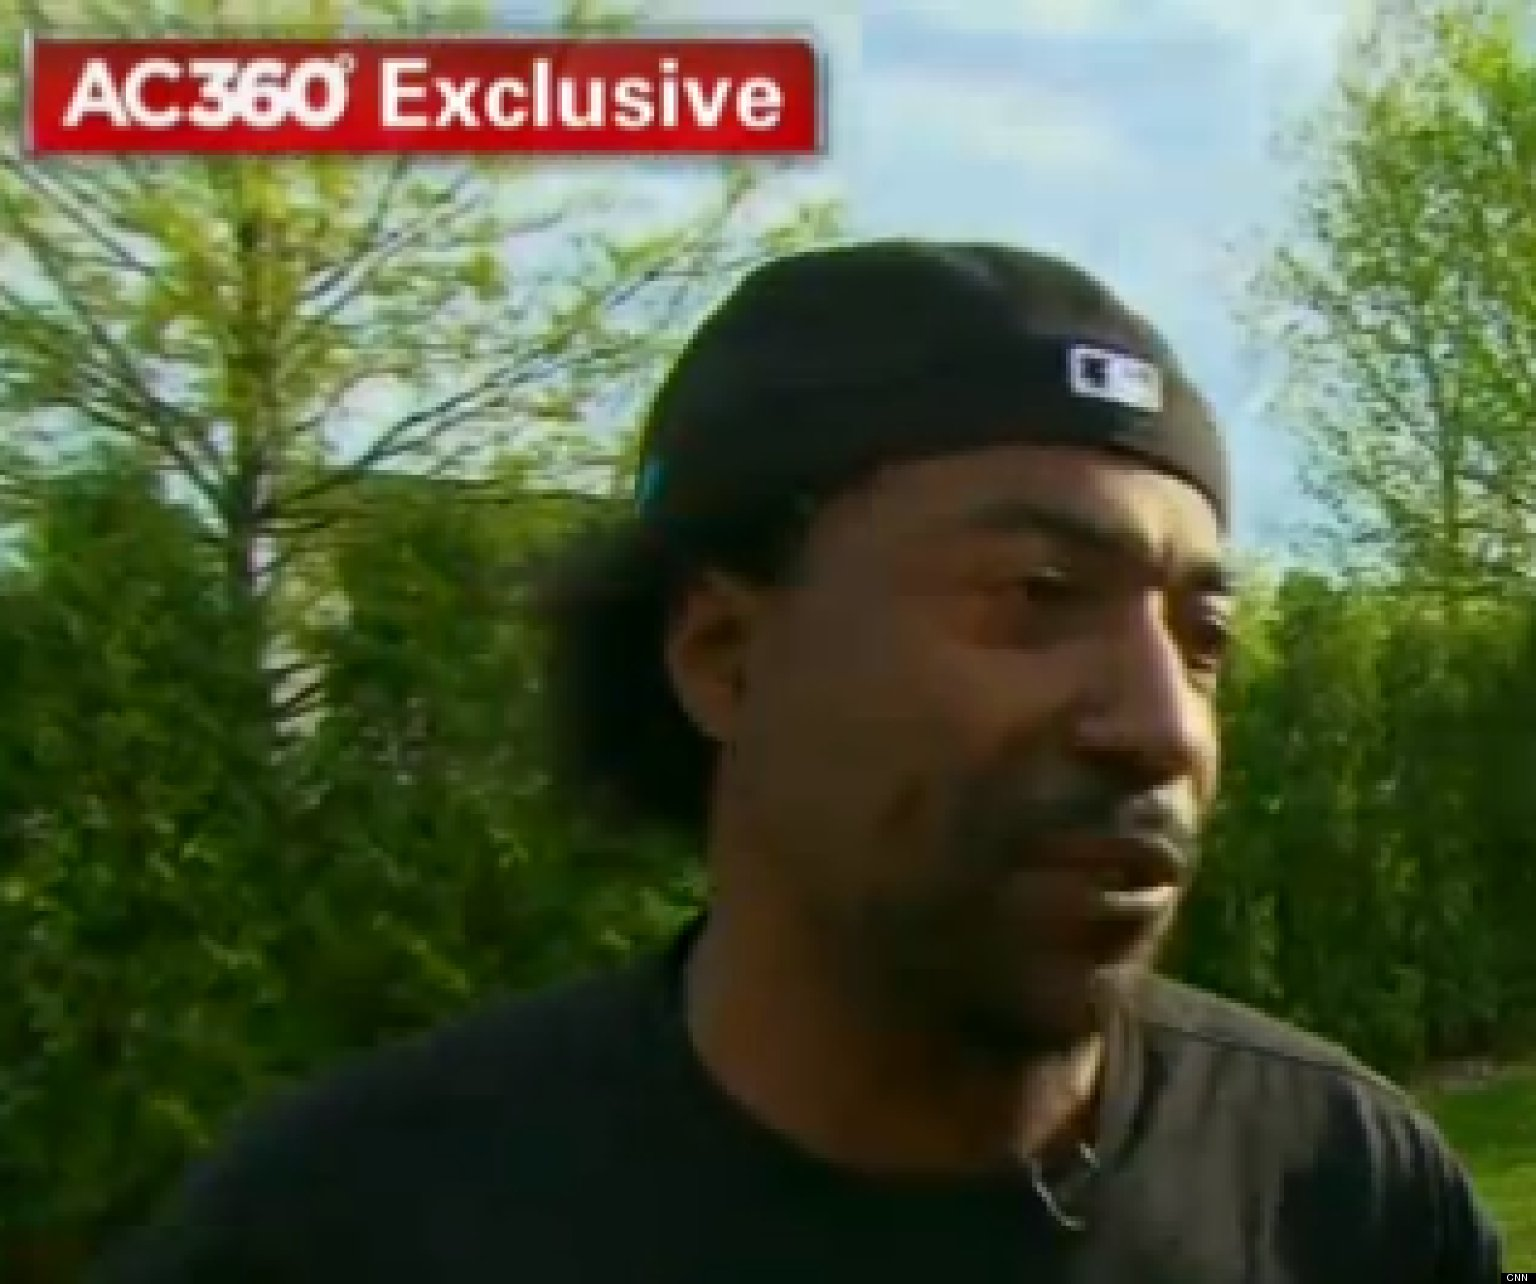 Charles Ramsey Says Any Reward Money Should Go To Victims